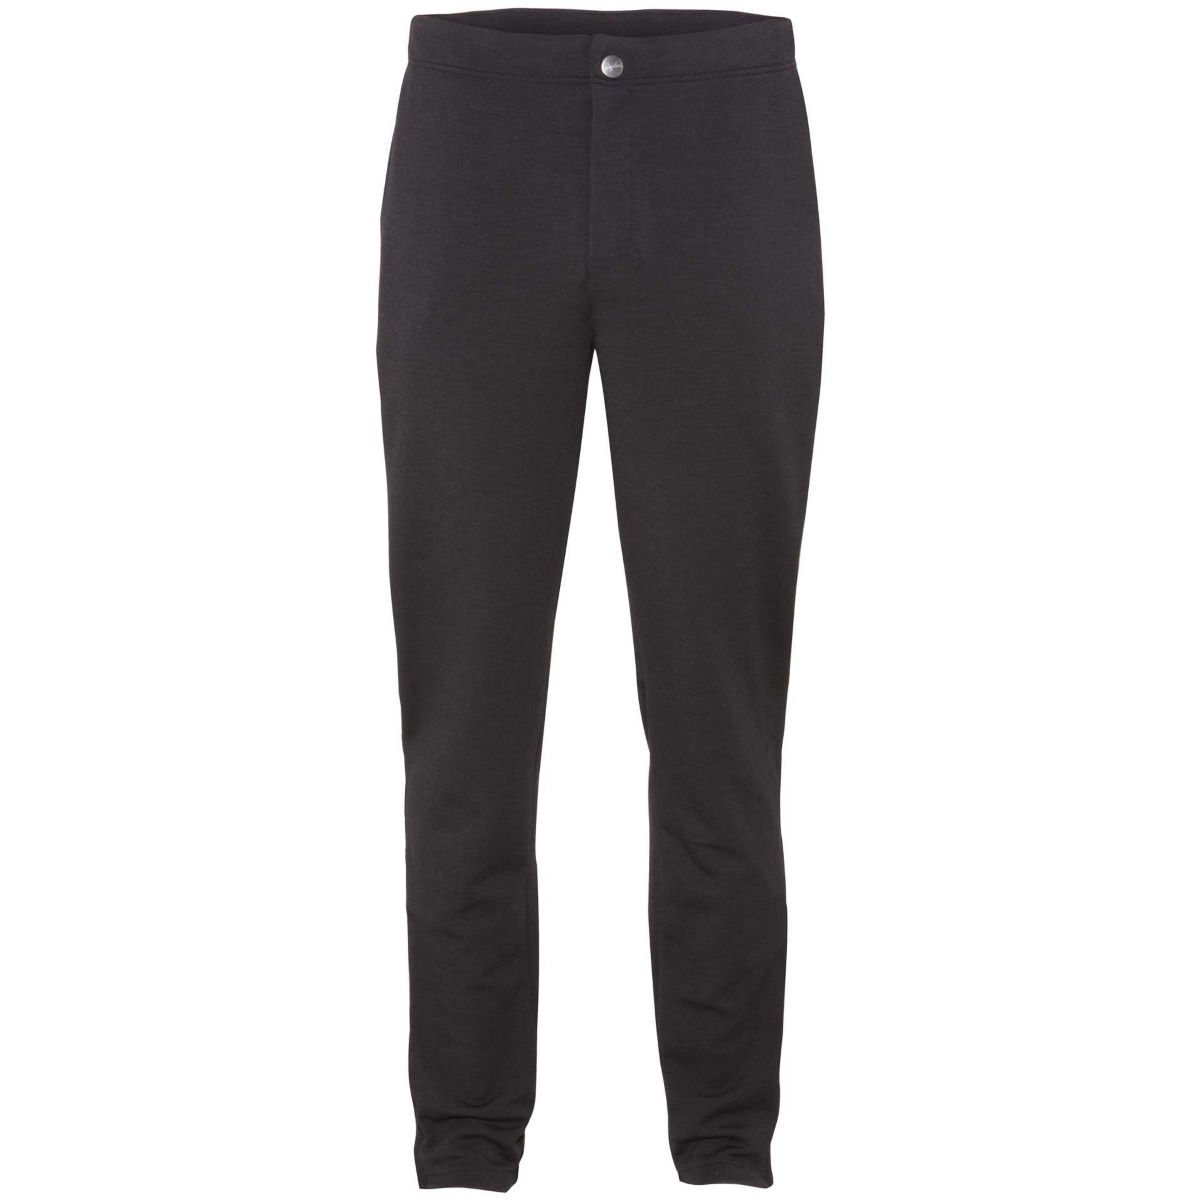 Rapha Rapha Transfer Trousers   Trousers